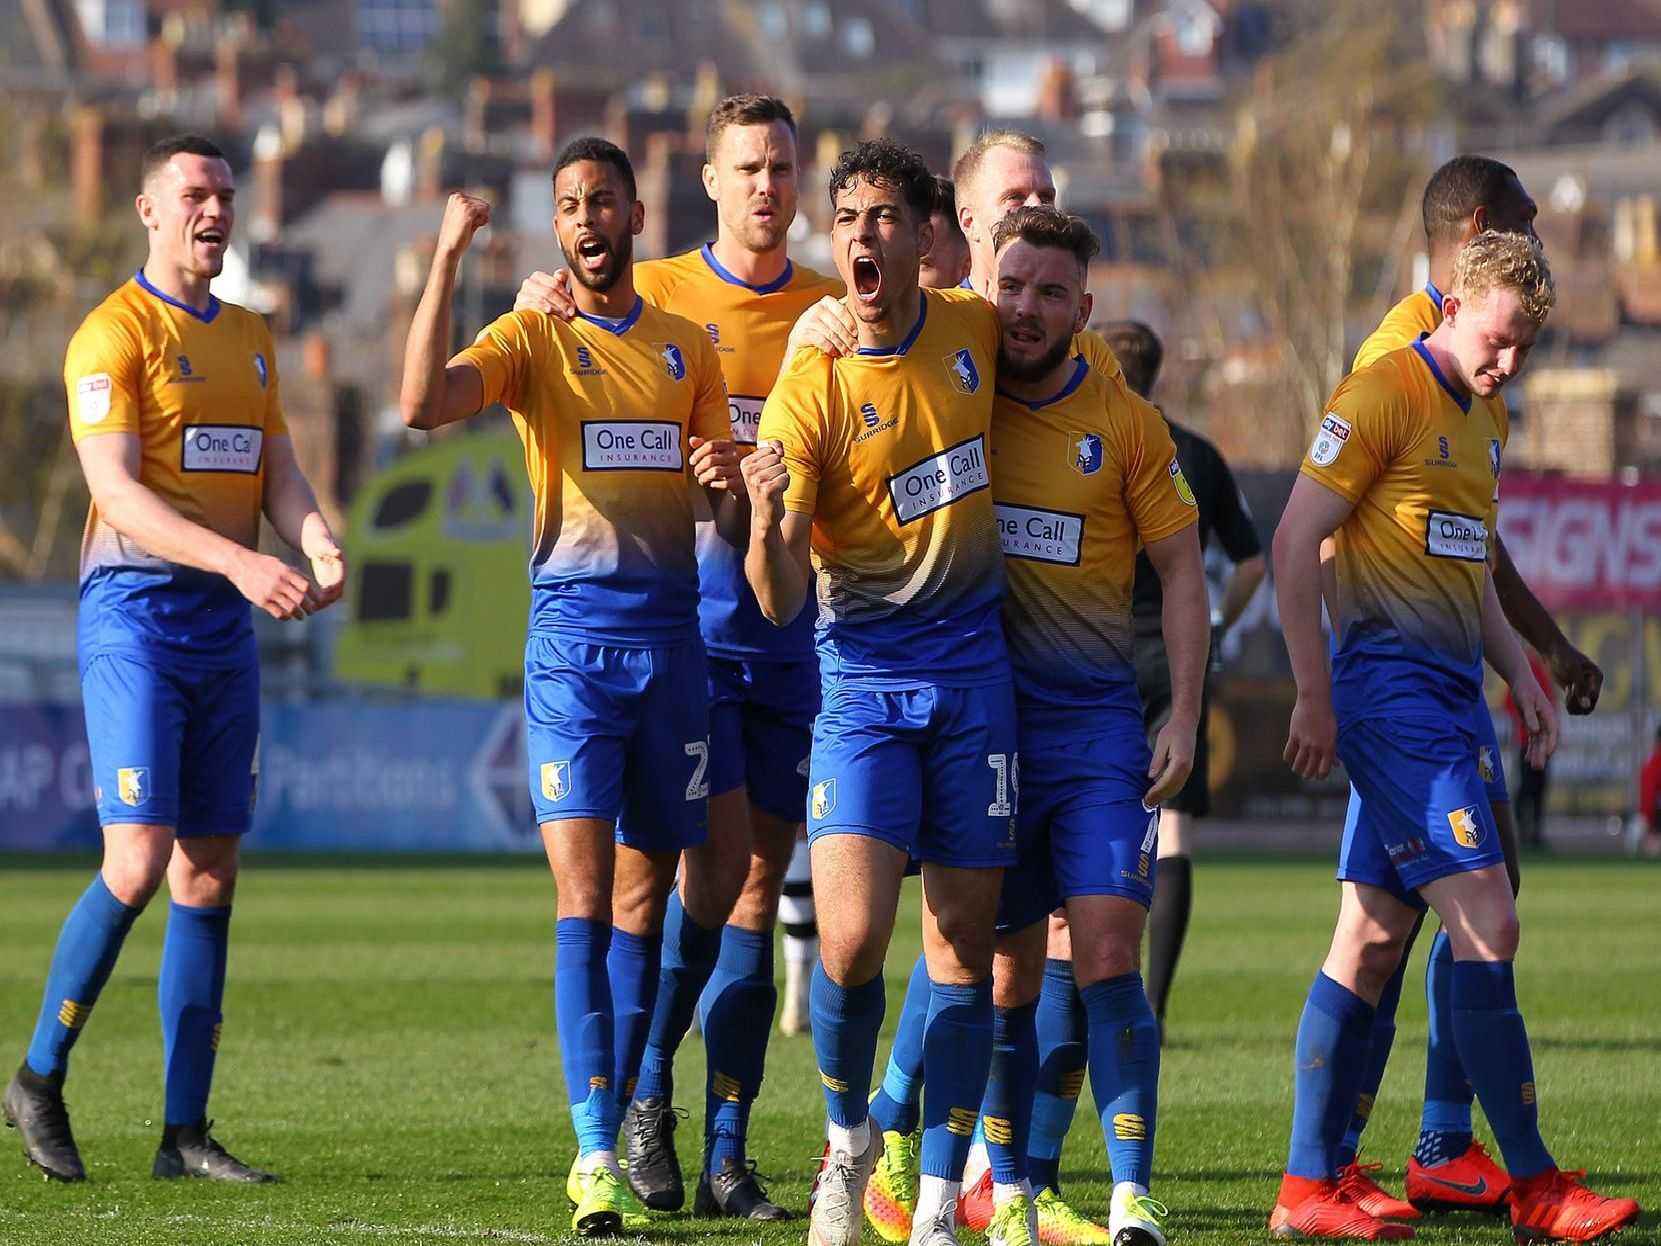 Stags win at Exeter